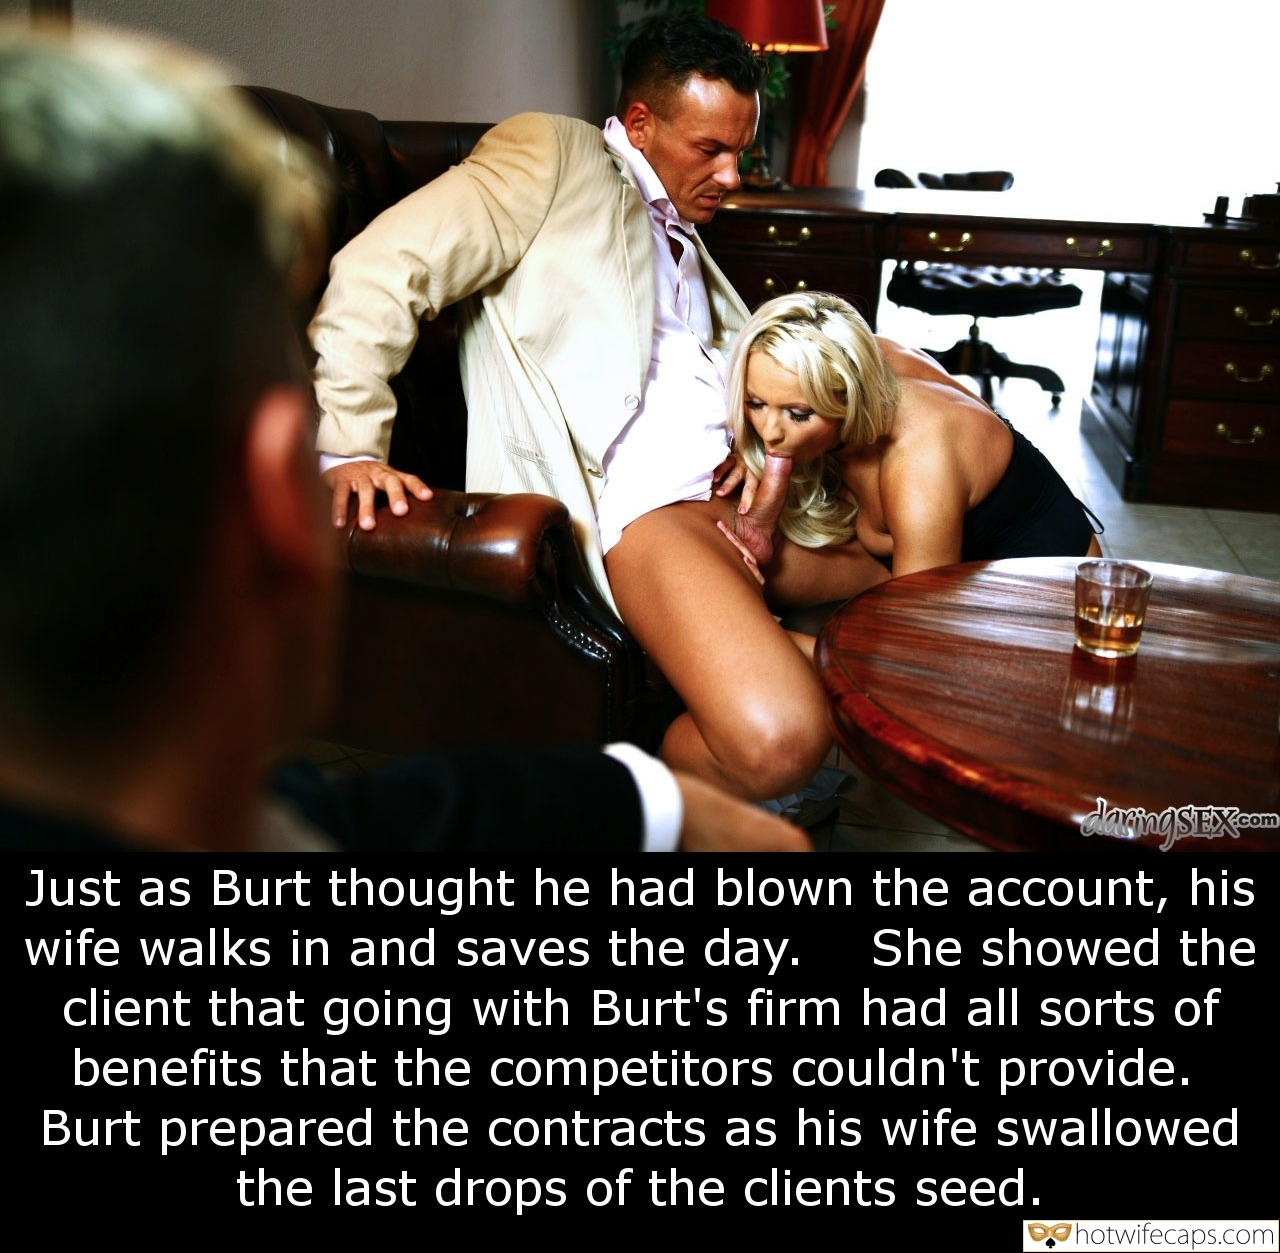 Blowjob  hotwife caption: Just as Burt thought he had blown the account, his wife walks in and saves the day. client that going with Burt's firm had all sorts of benefits that the competitors couldn't provide. Burt prepared the contracts as his wife...